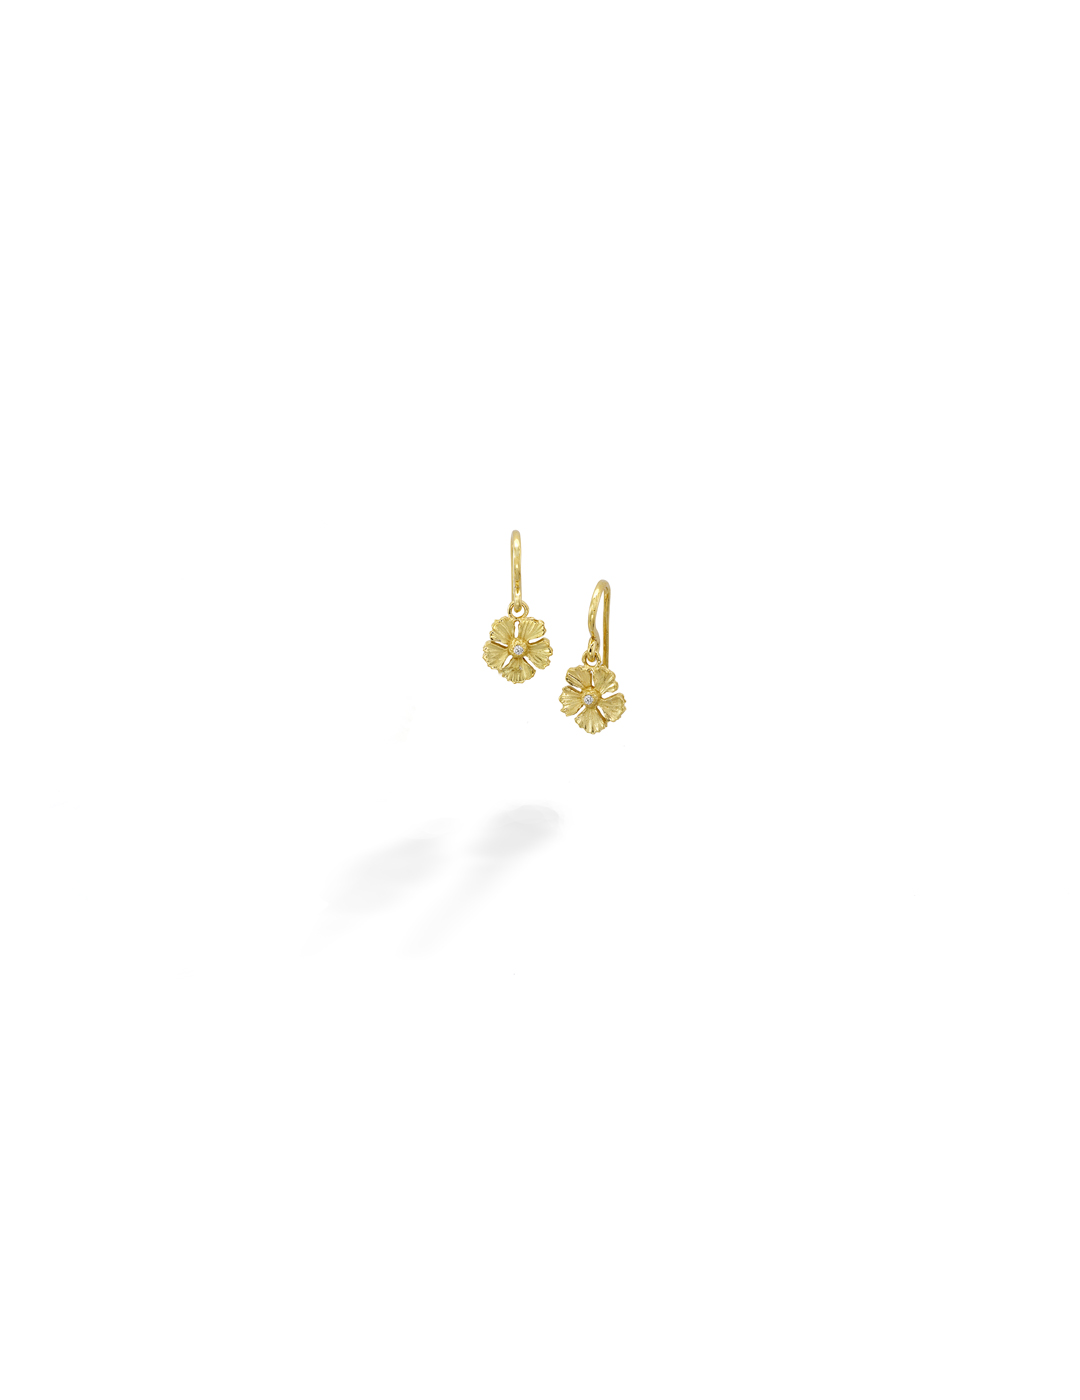 mish_products_earrings_Strawberry-FW SM Diam-ER-1